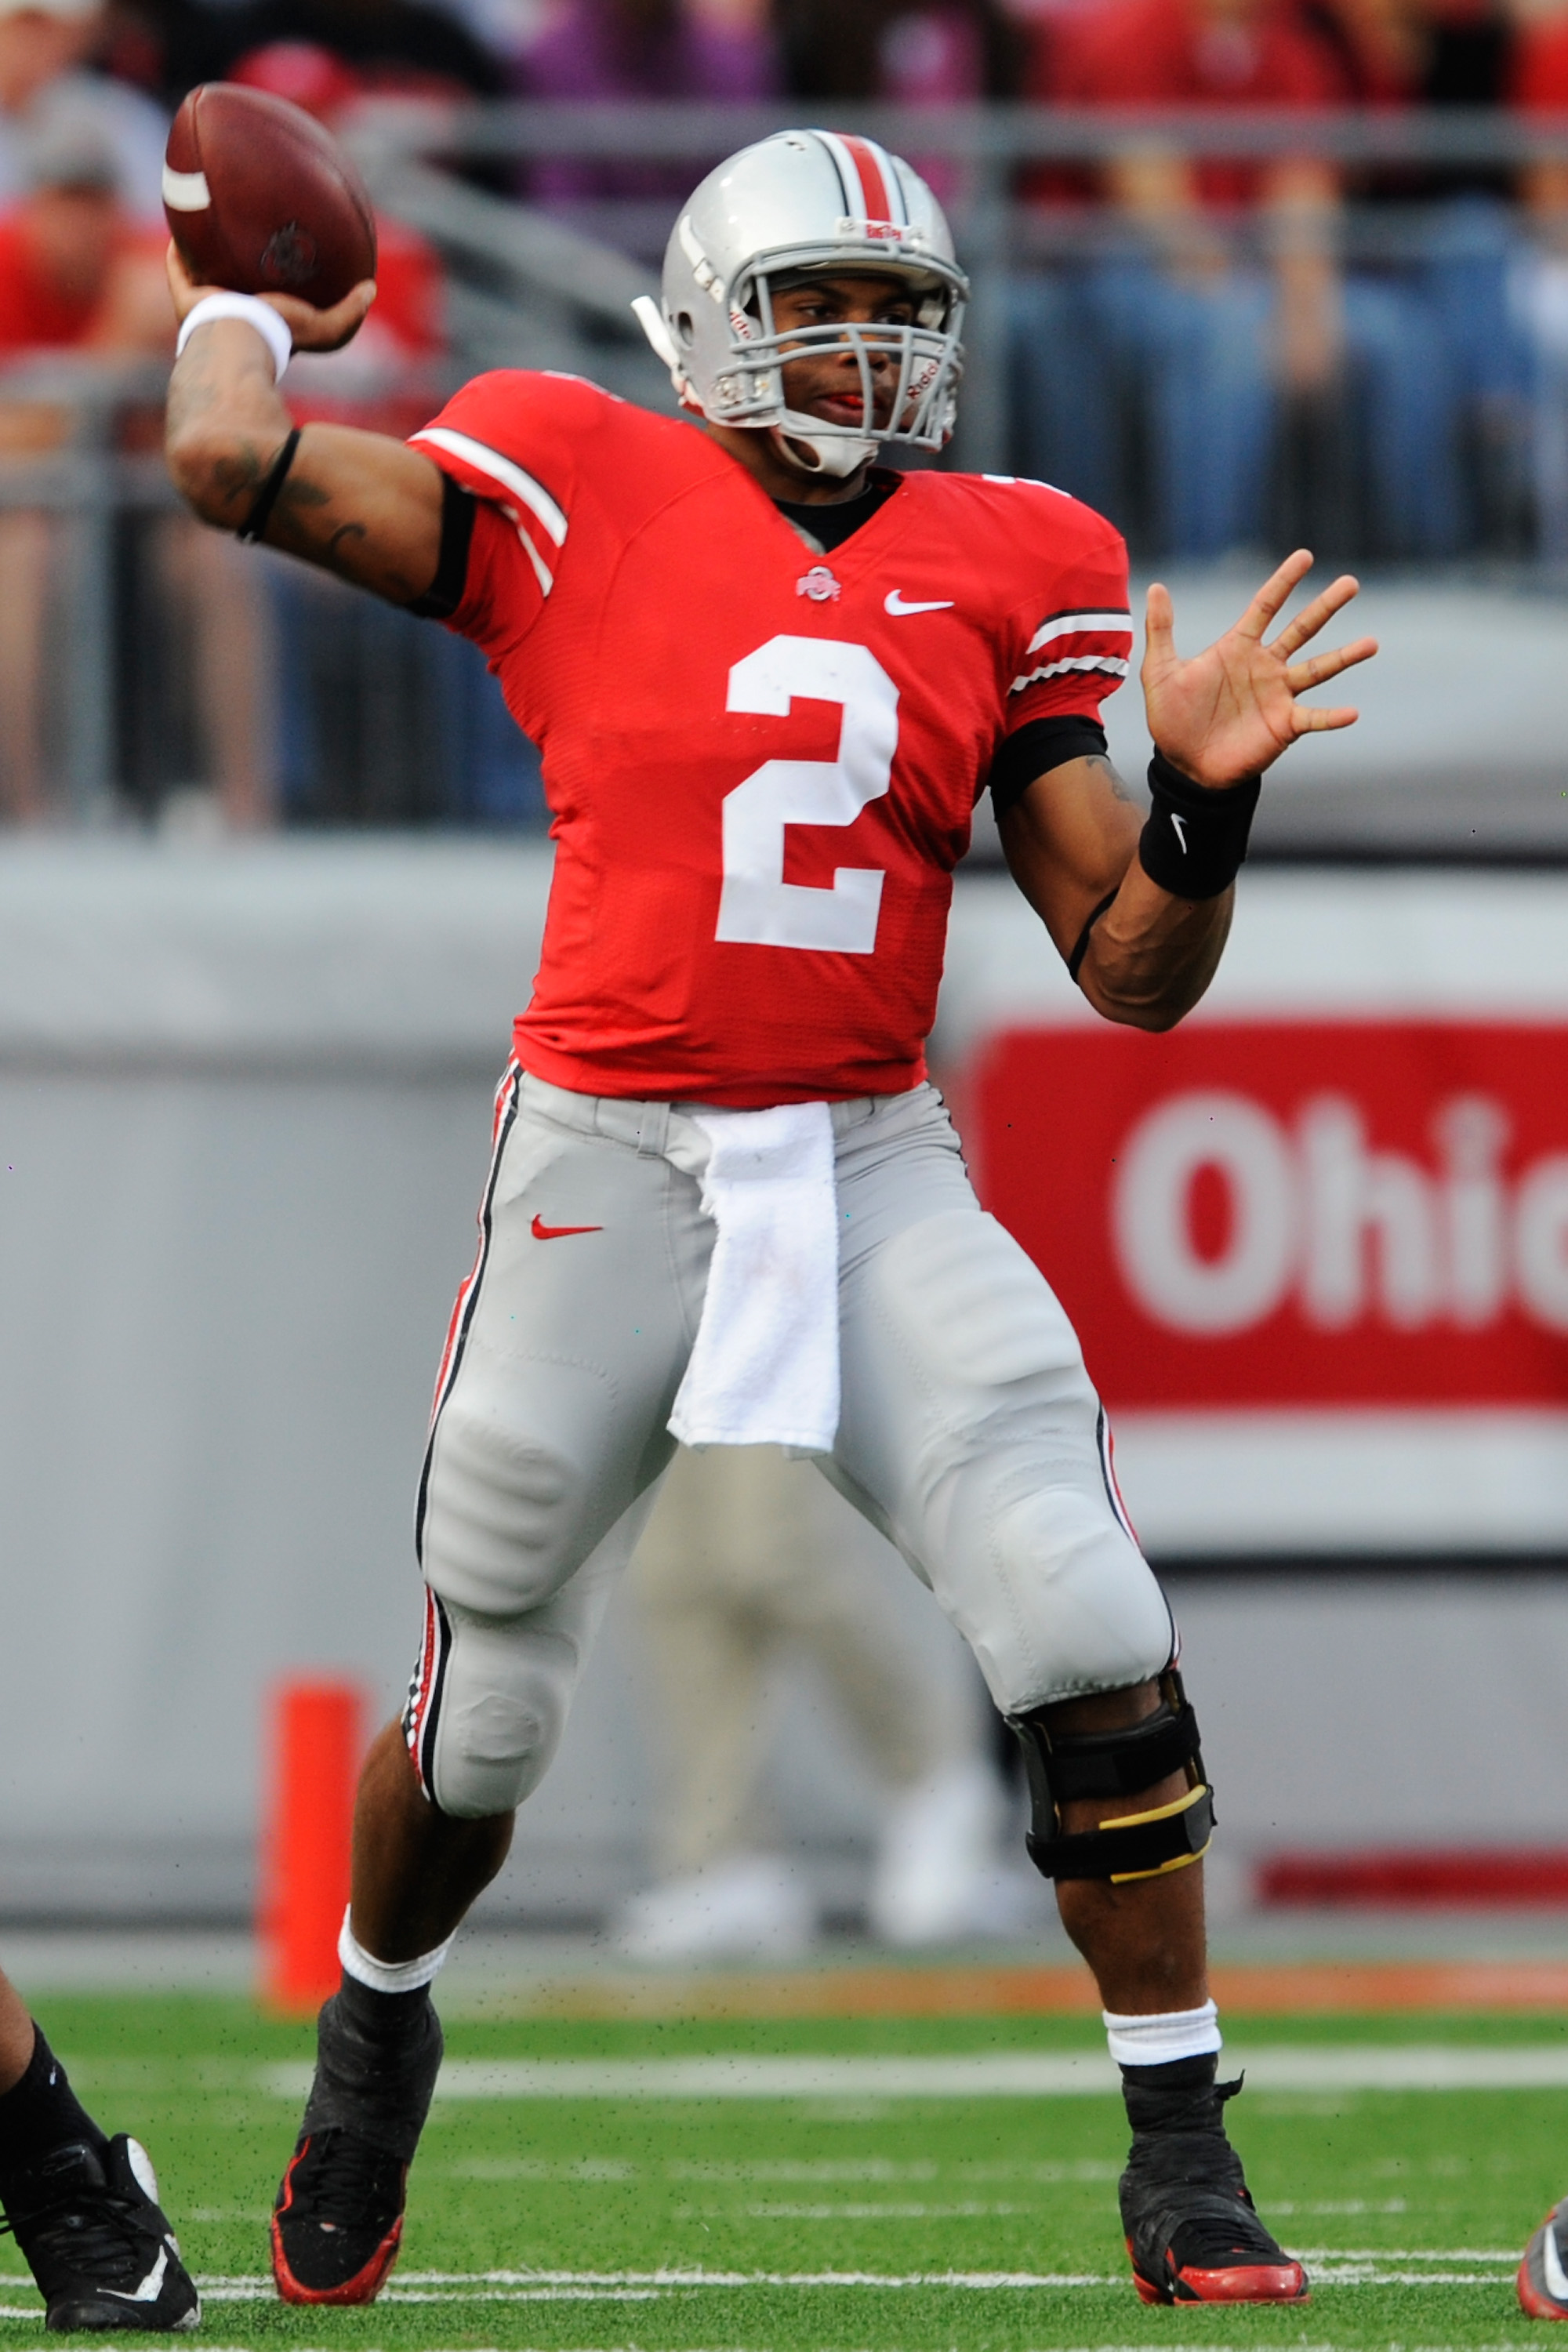 COLUMBUS, OH - NOVEMBER 13:  Terrelle Pryor #2 of the Ohio State Buckeyes completes a pass against the Penn State Nittany Lions at Ohio Stadium on November 13, 2010 in Columbus, Ohio.  (Photo by Jamie Sabau/Getty Images)